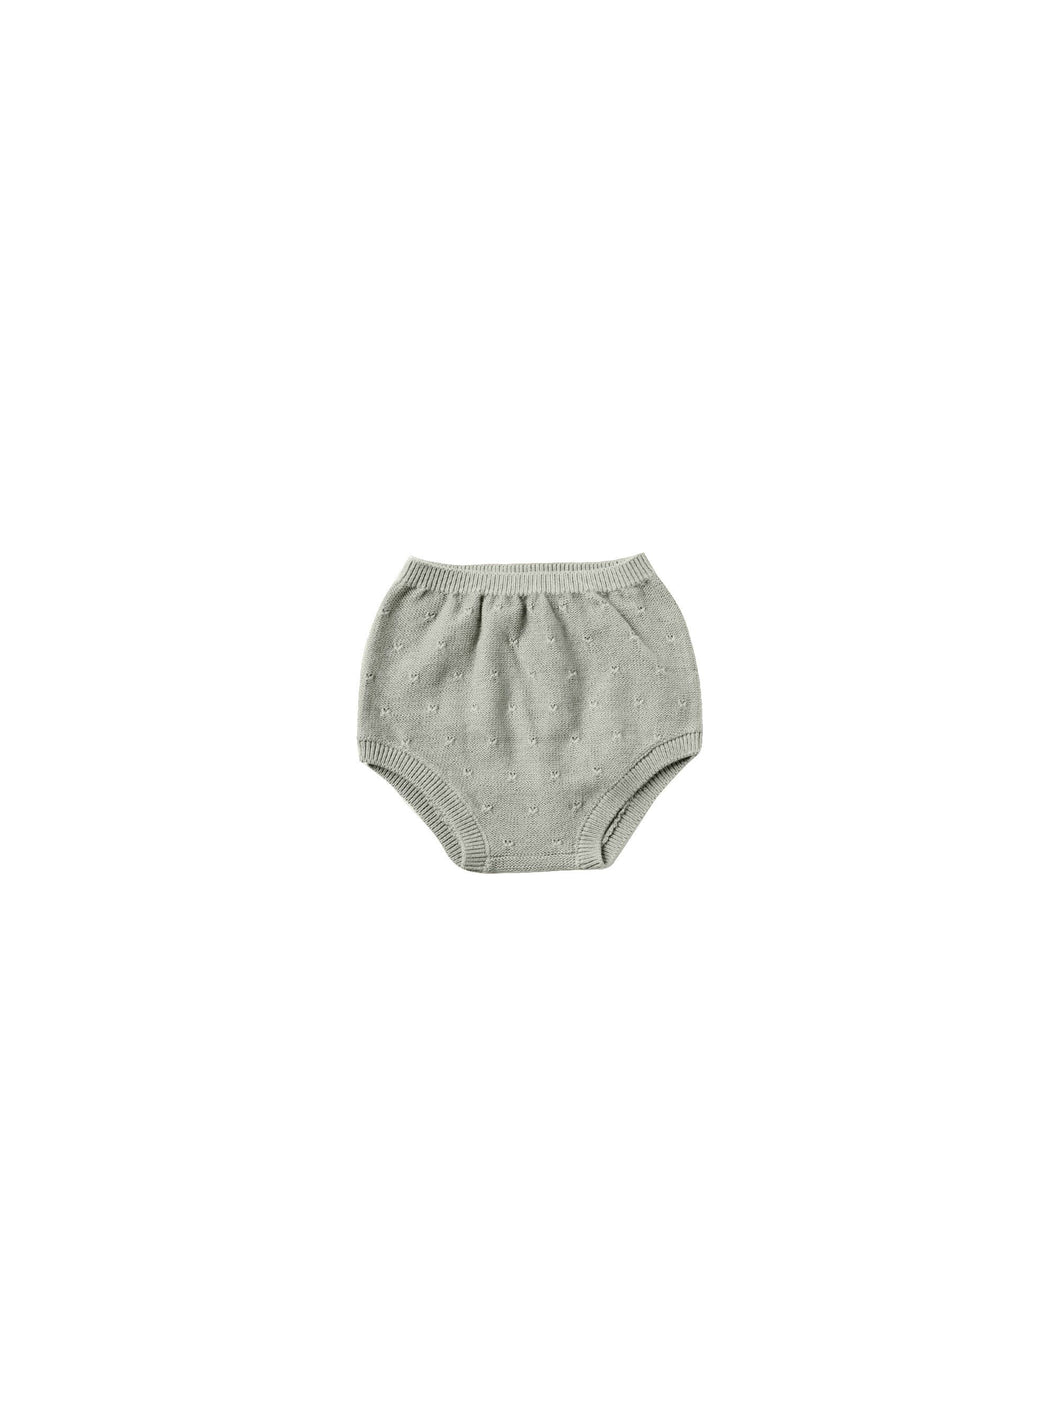 Quincy Mae knit bloomer - sage